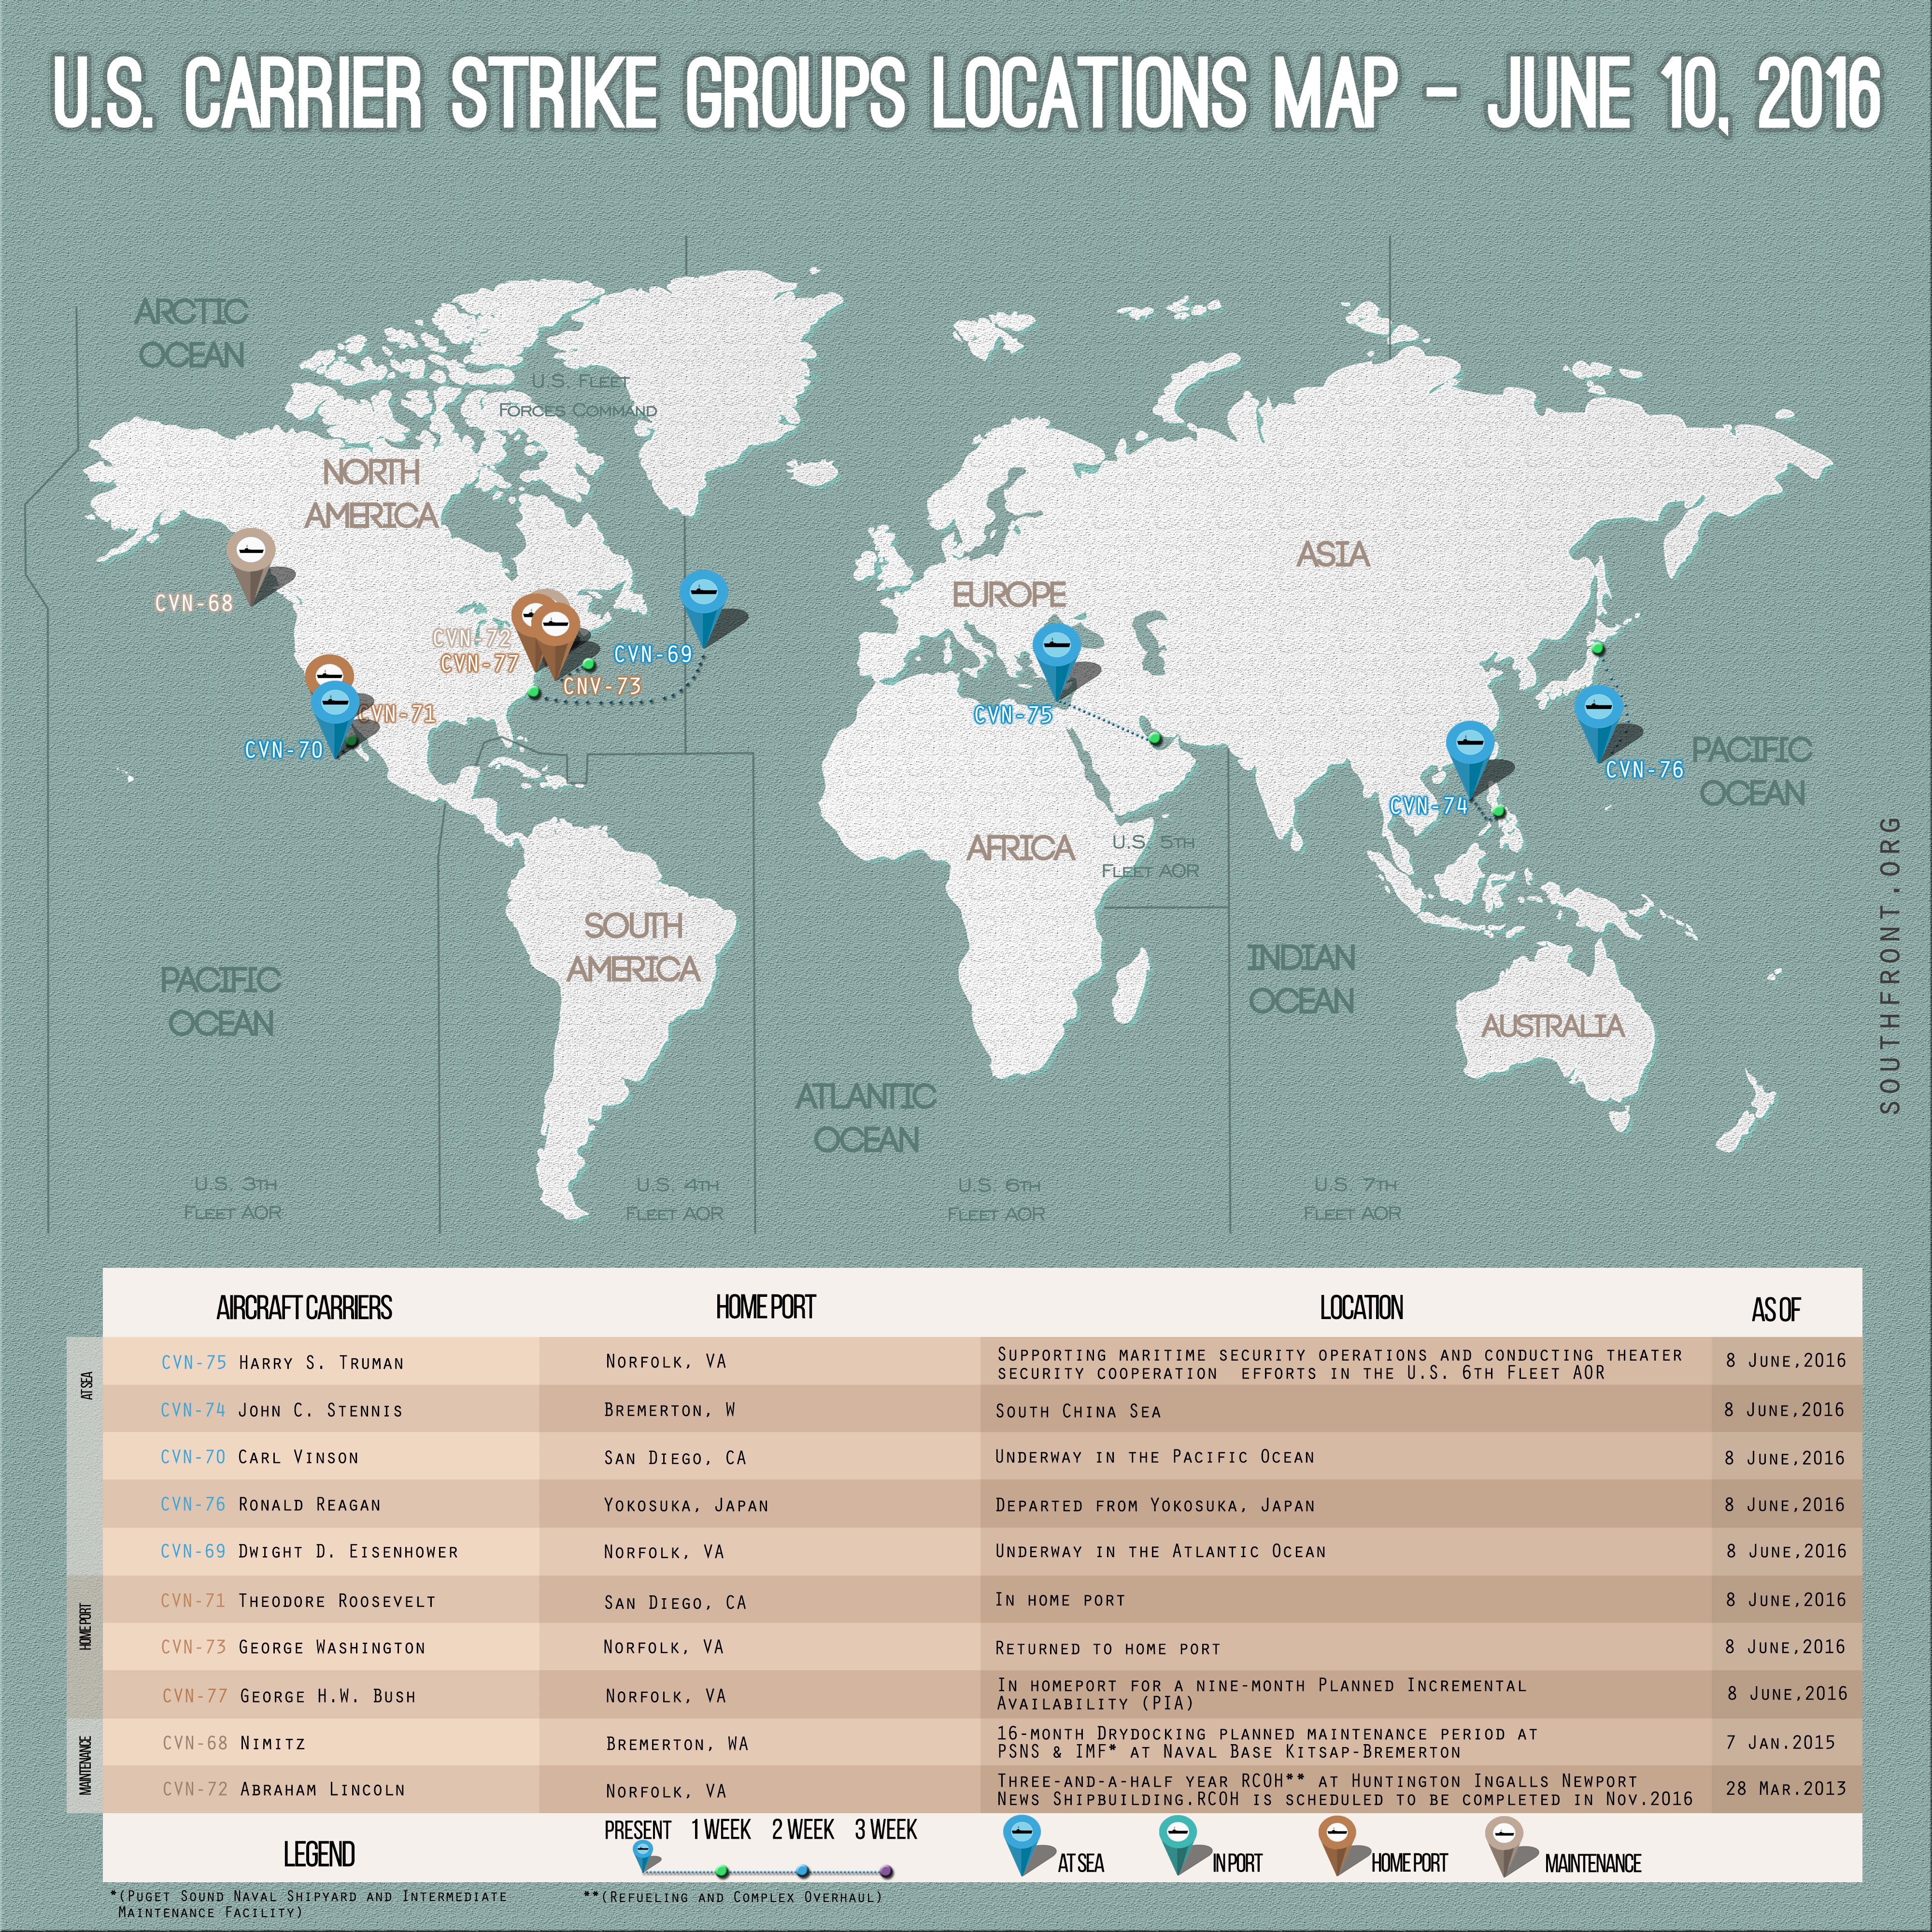 U.S. Carrier Strike Groups Locations Map – June 10, 2016